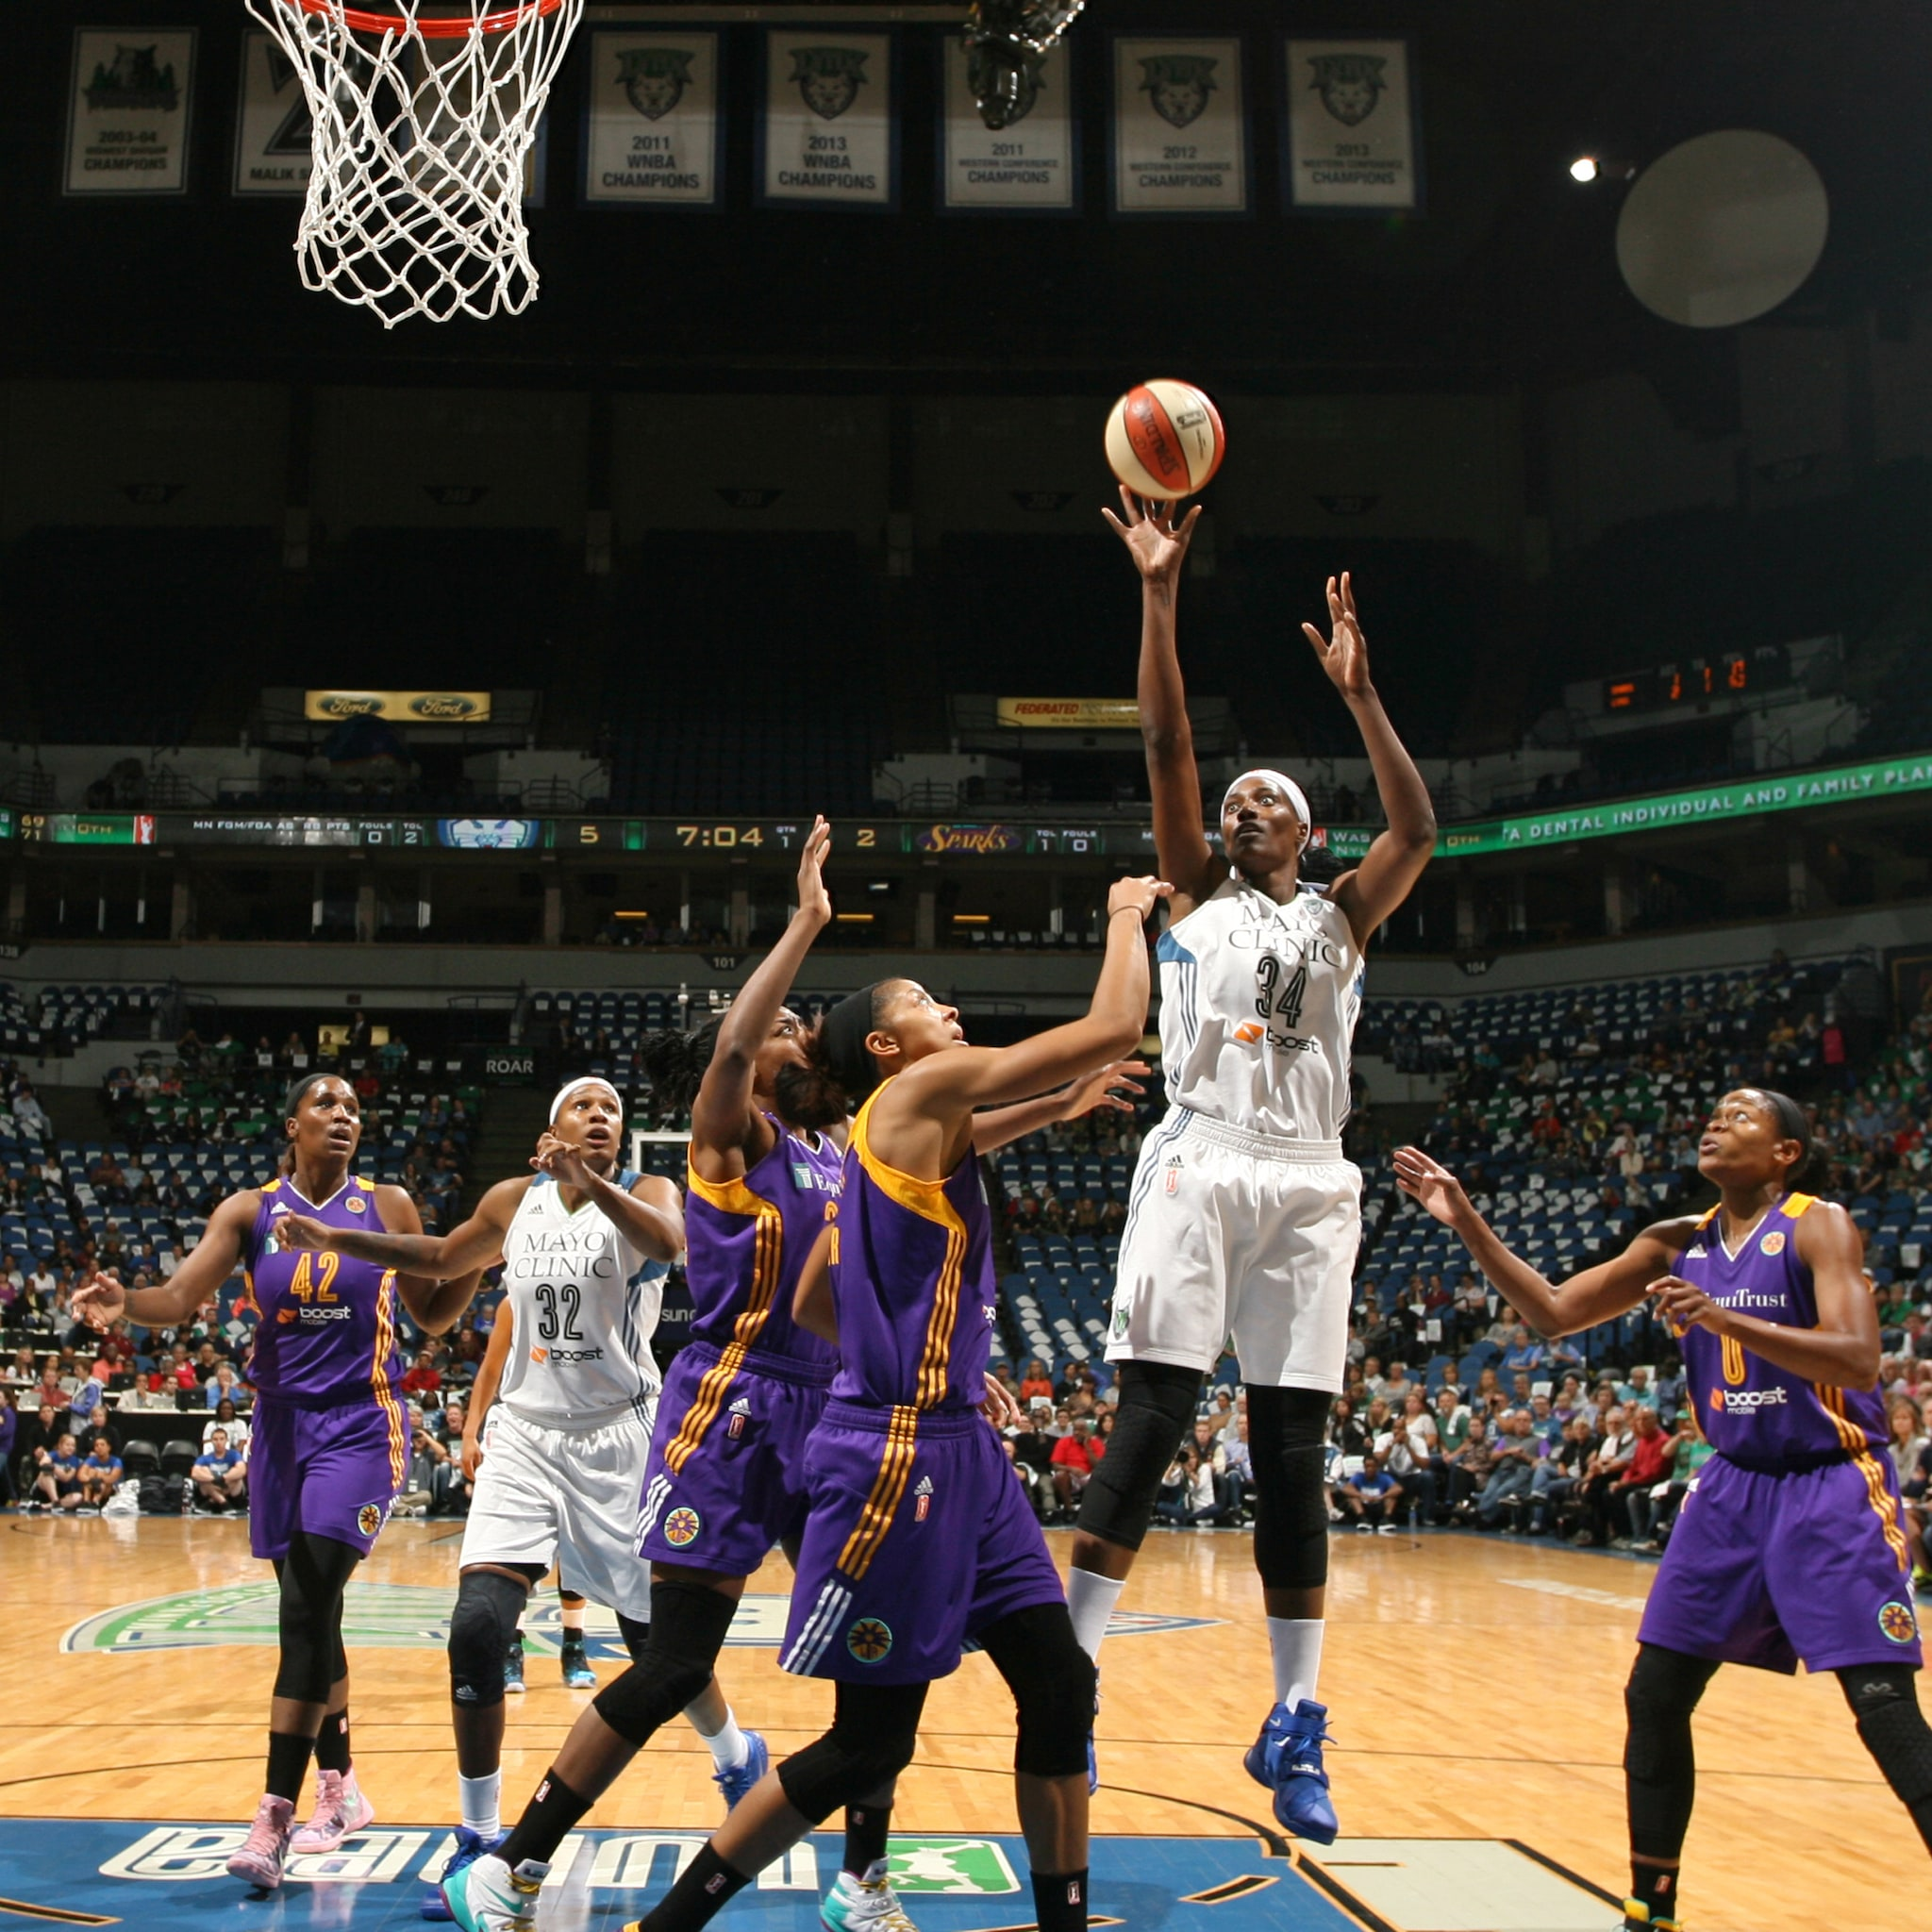 MINNEAPOLIS, MN - SEPTEMBER 18:  Sylvia Fowles #34 of the Minnesota Lynx shoots the ball against the Los Angeles Sparks during Game 1 of the 2015 WNBA Western Conference Semifinal on September 18, 2015 at Target Center in Minneapolis, Minnesota.  NOTE TO USER: User expressly acknowledges and agrees that, by downloading and or using this Photograph, user is consenting to the terms and conditions of the Getty Images License Agreement. Mandatory Copyright Notice: Copyright 2015 NBAE (Photo by David Sherman/NBAE via Getty Images)